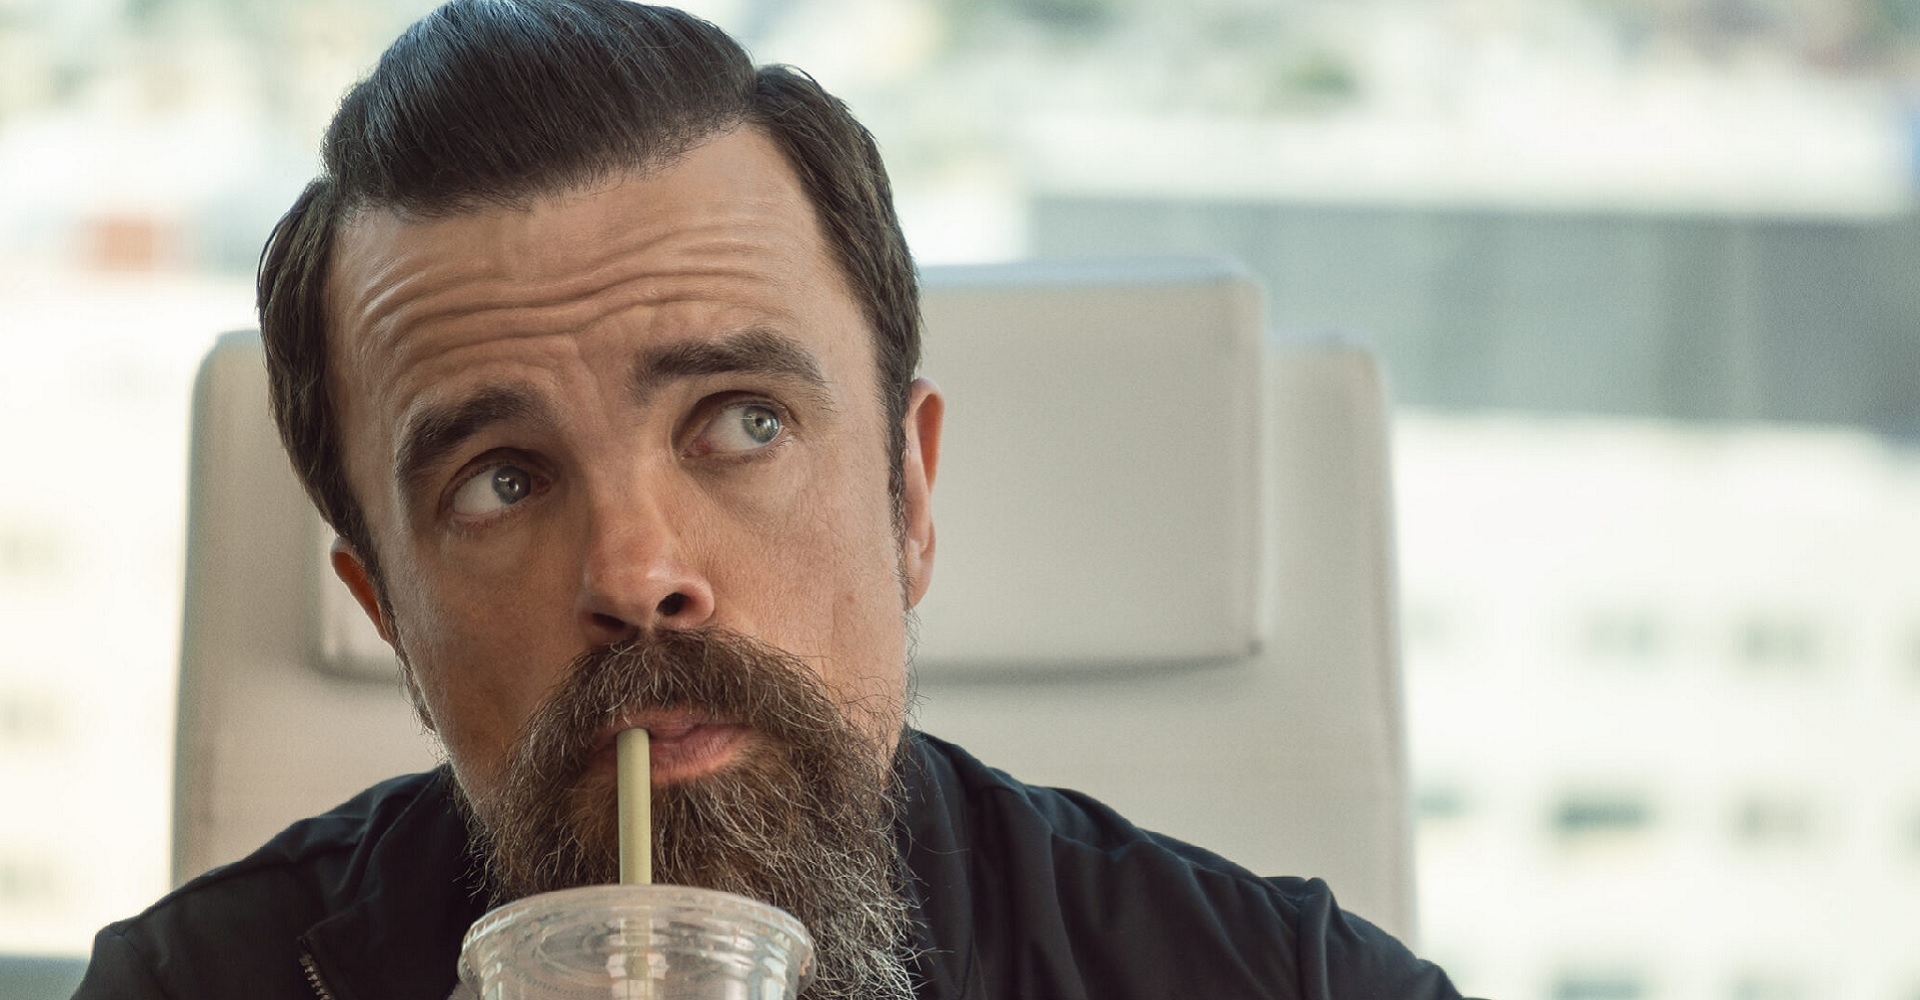 Peter Dinklage in I Care a Lot